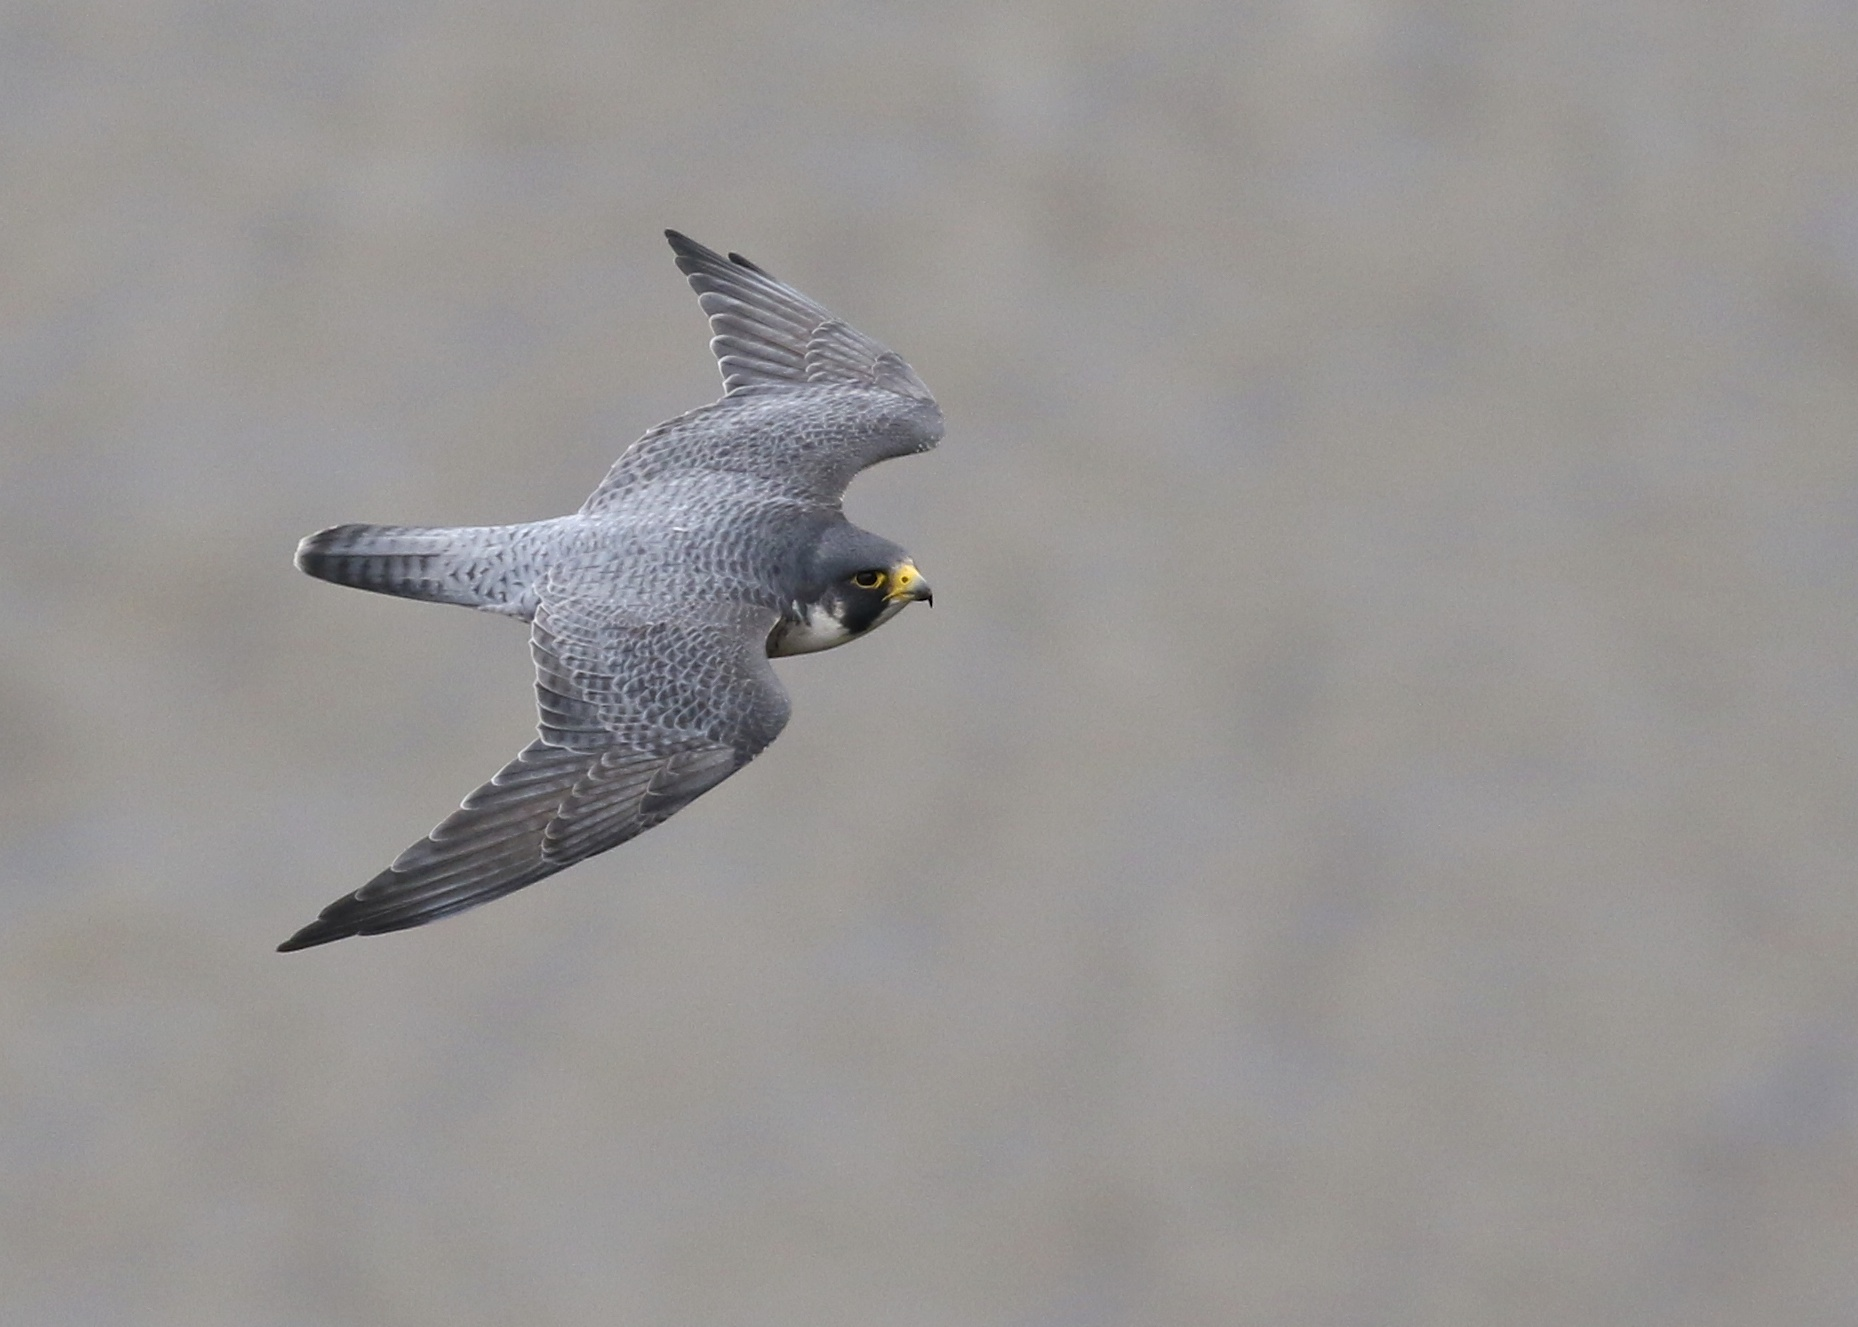 One of the resident Peregrine Falcons at State Line Hawk Watch, 10/26/14.